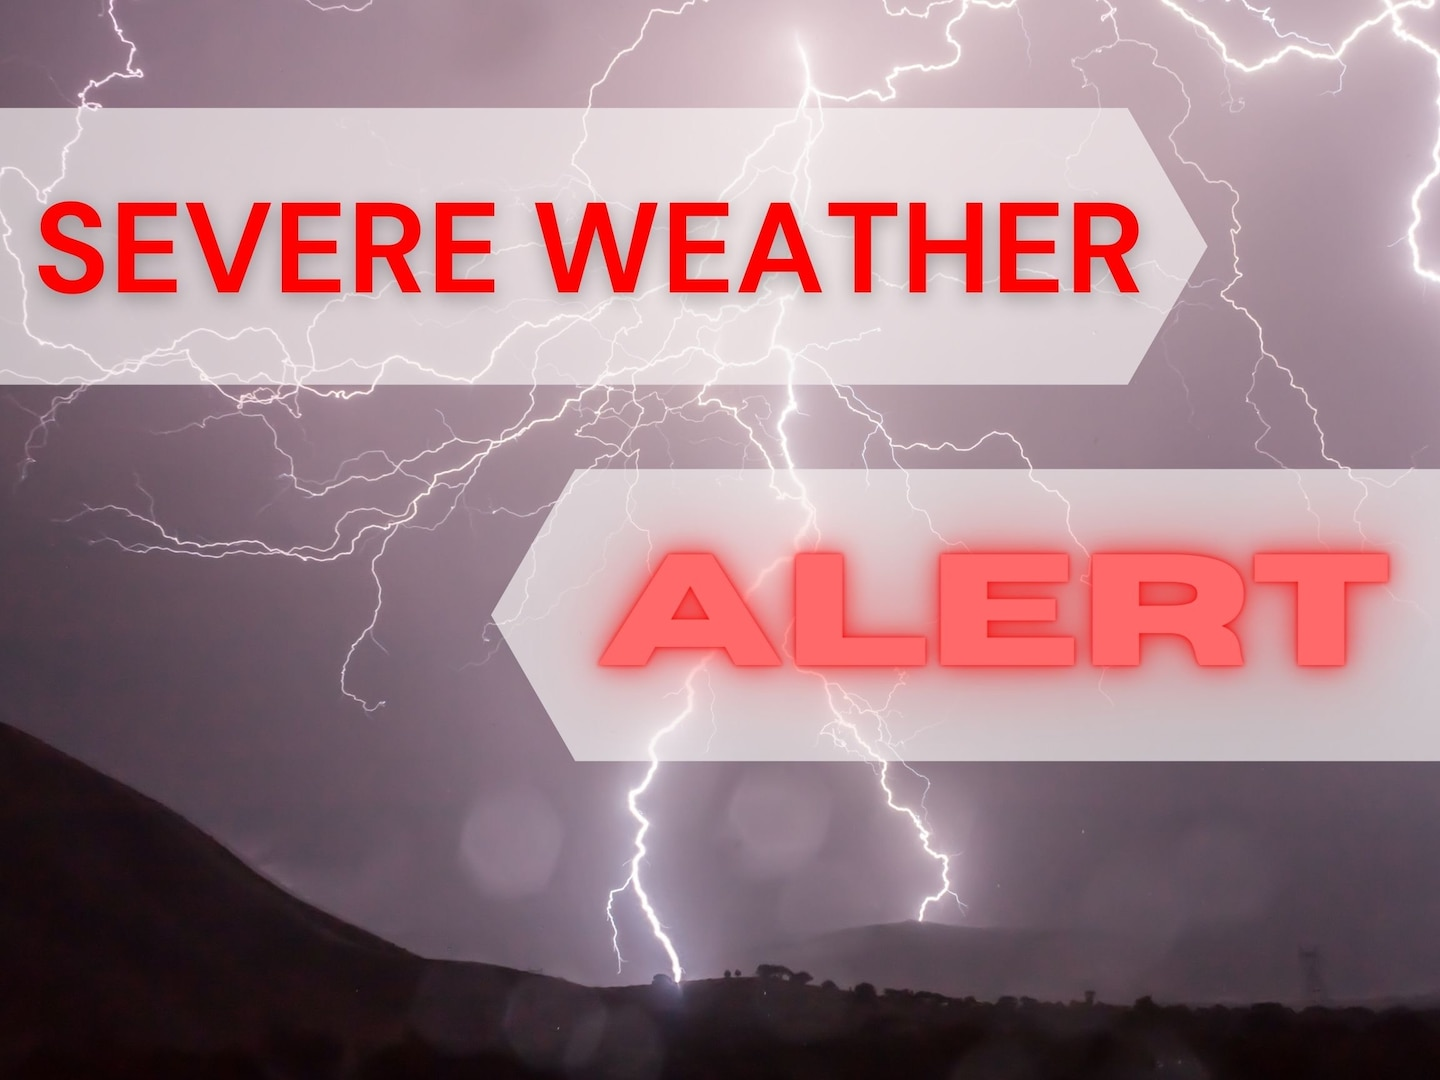 Joint Base San Antonio Special Weather Alert: A strong cold front moving across the western U.S. will bring a chance of severe thunderstorms late Wednesday night with possible wind gusts of 50 knots and 1 inch hail.